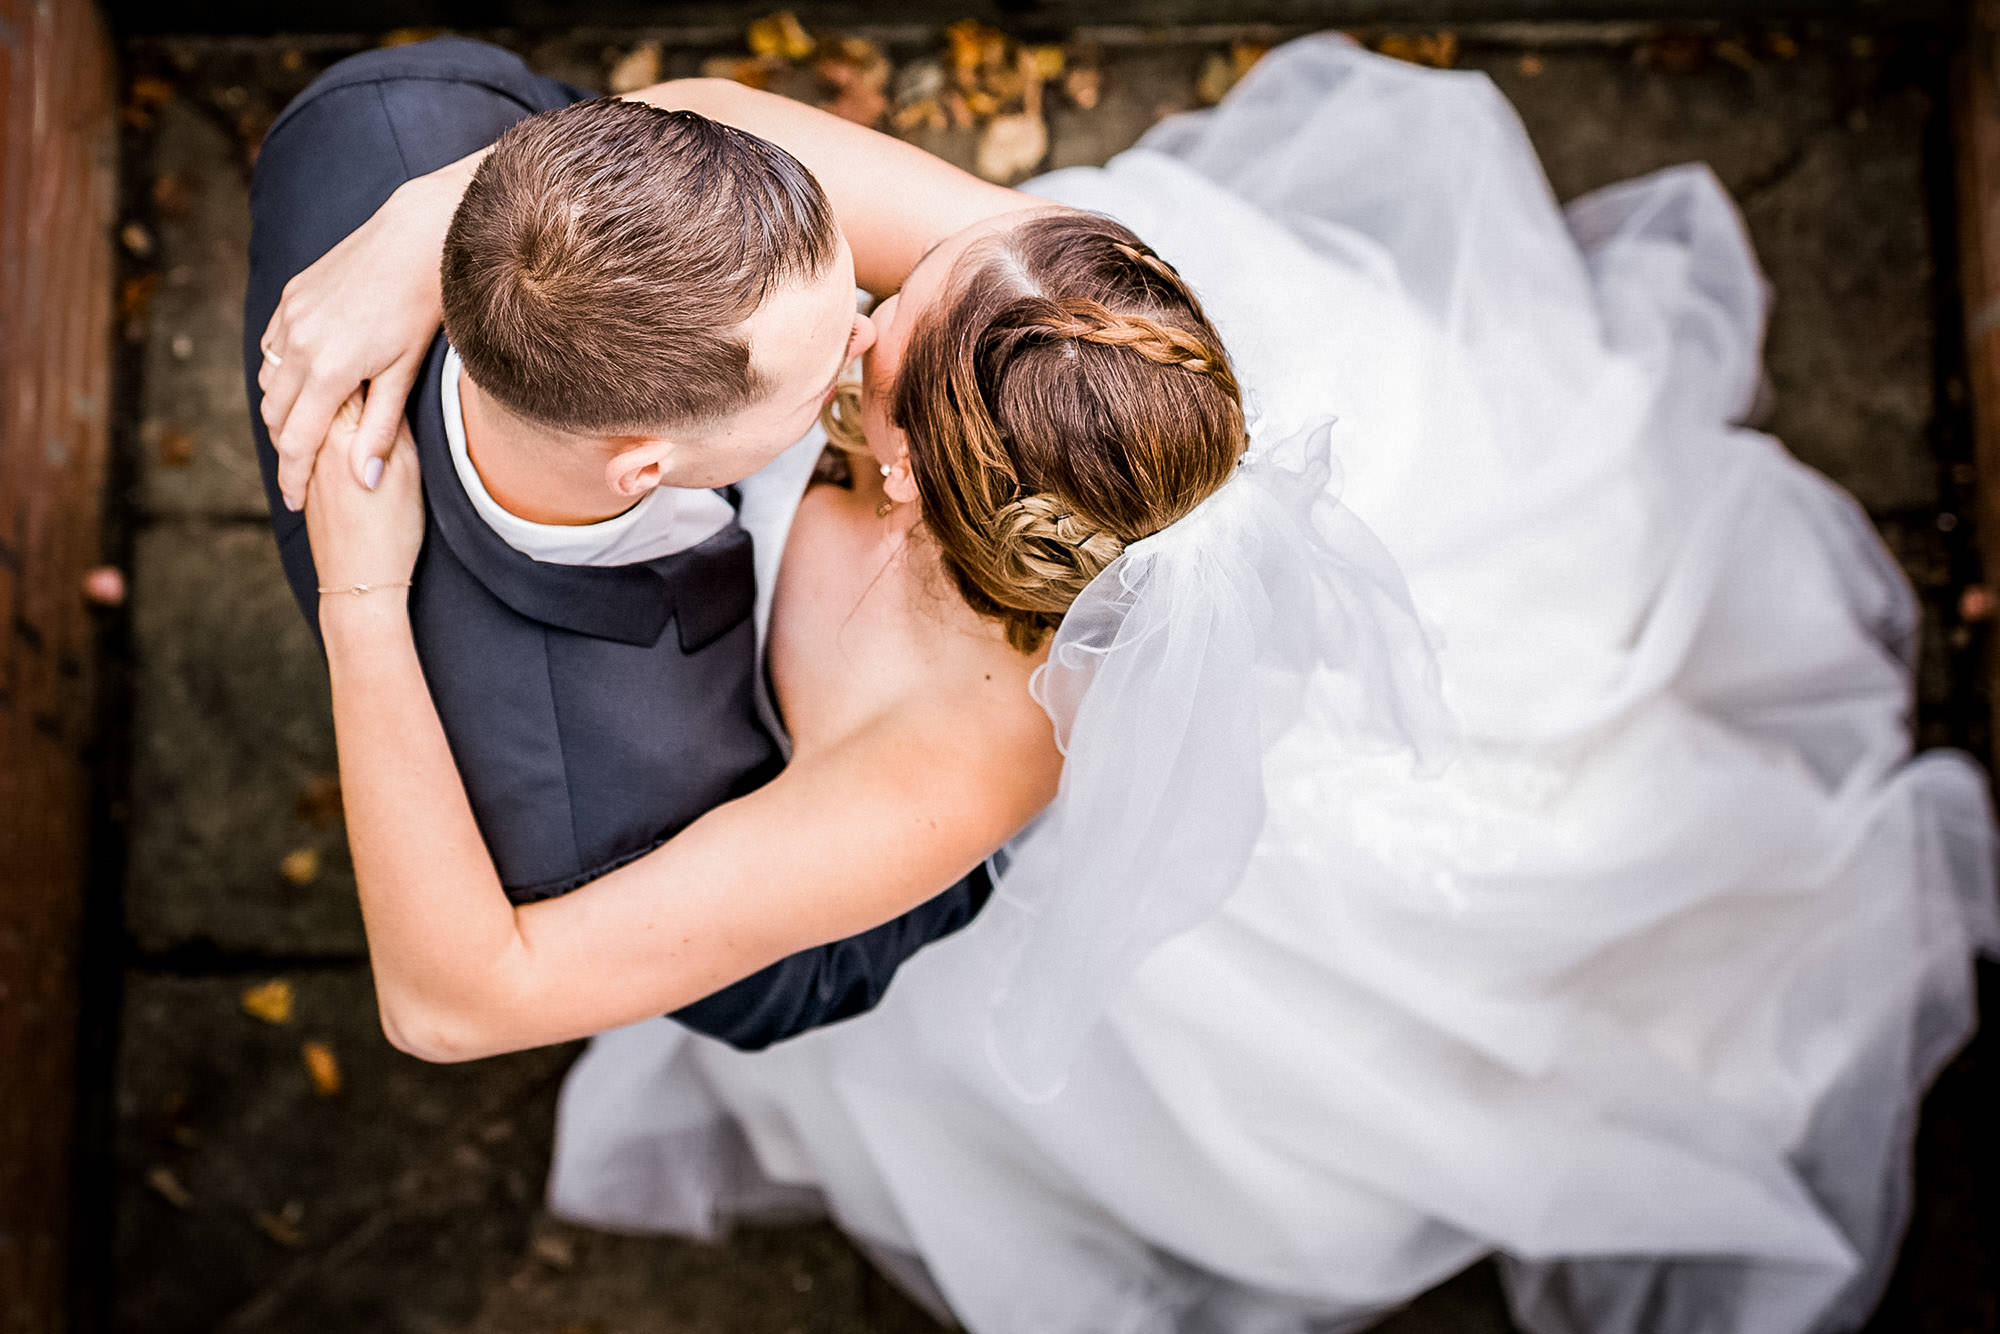 lucky moments - wedding photography by FOTOFECHNER